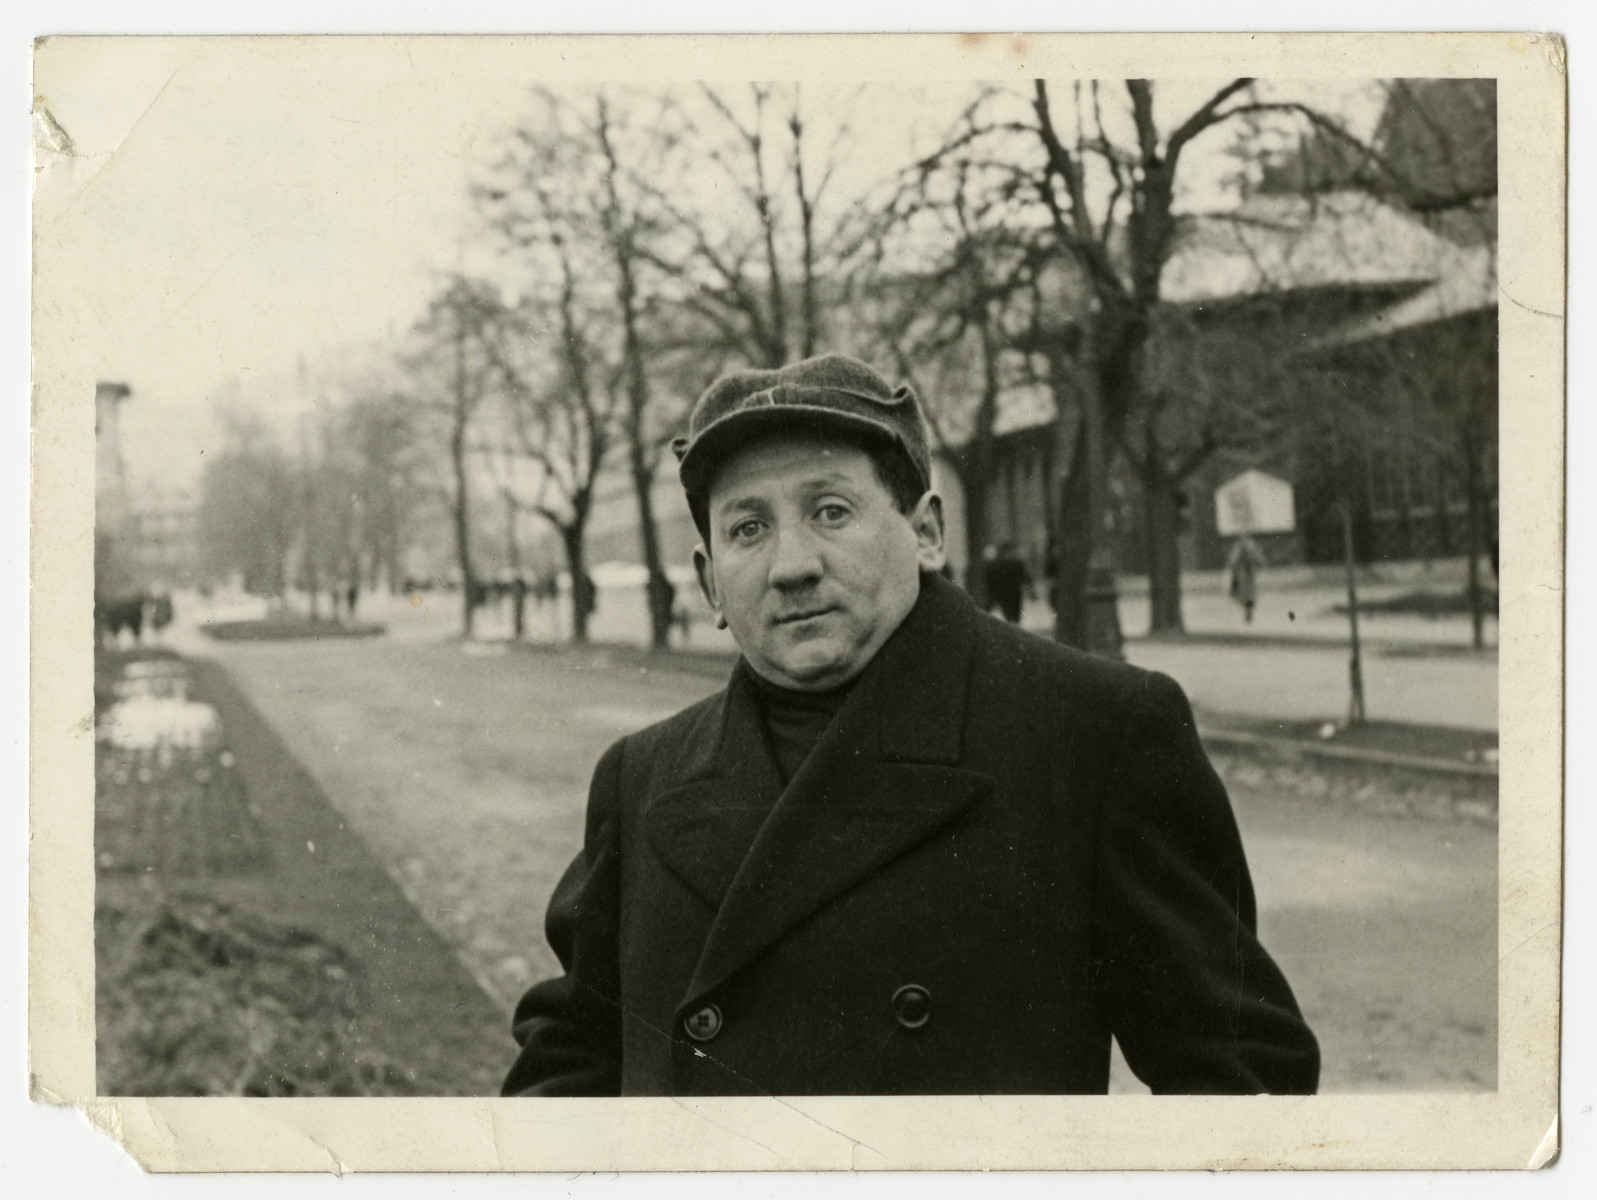 A member of the Rabinowitz family stands on a street in prewar Otwock..